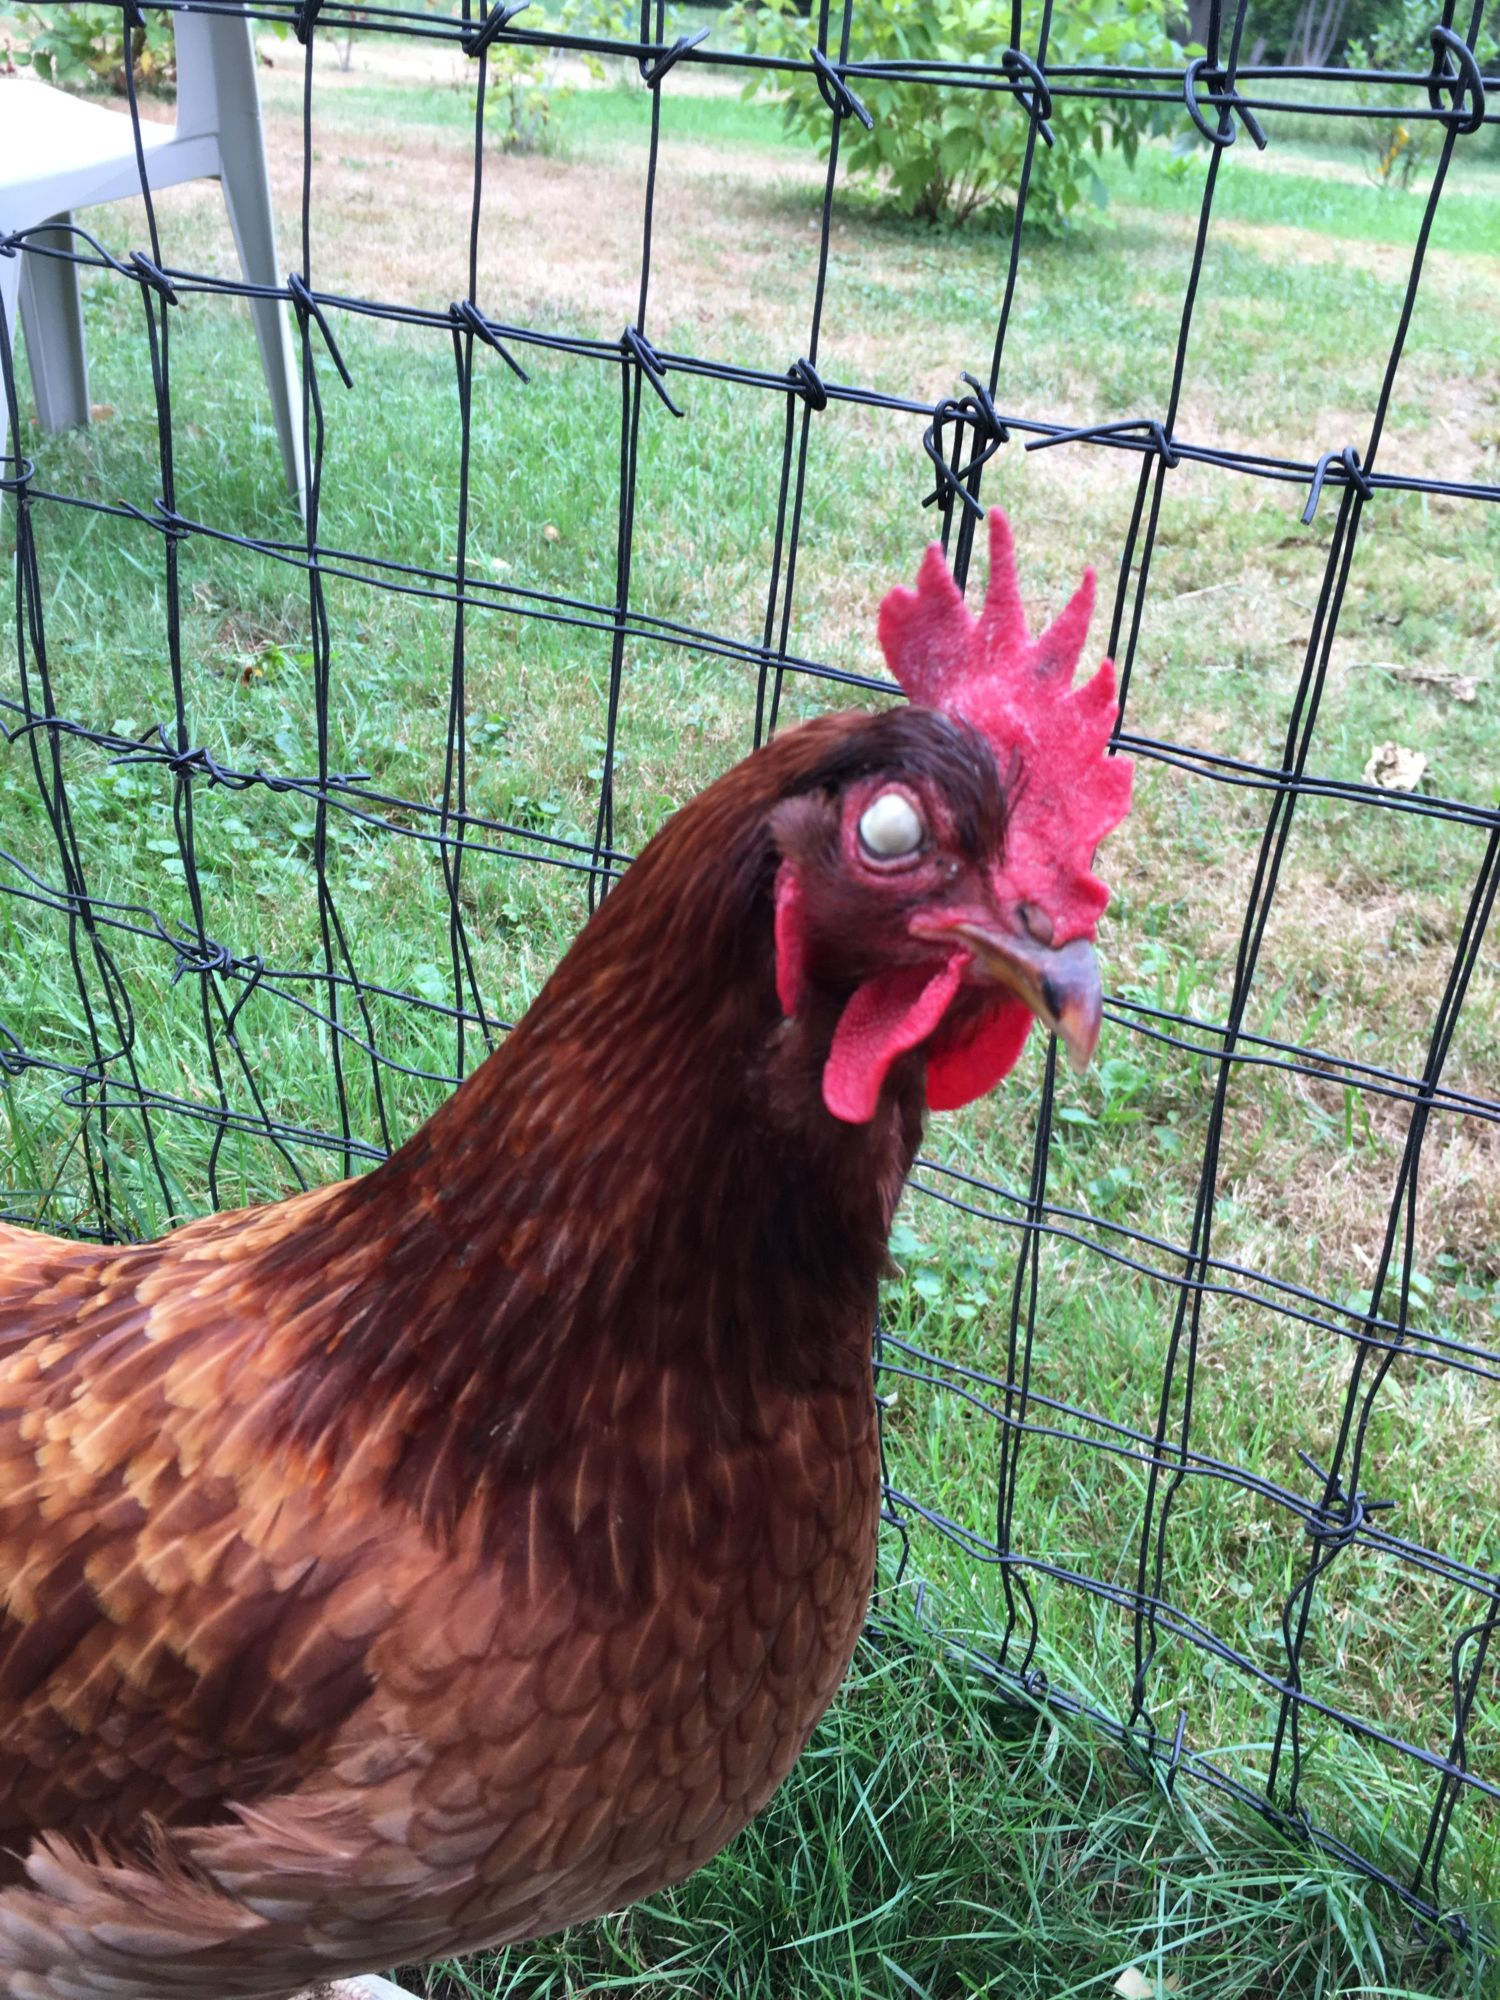 Terramycin Ointment For Chickens